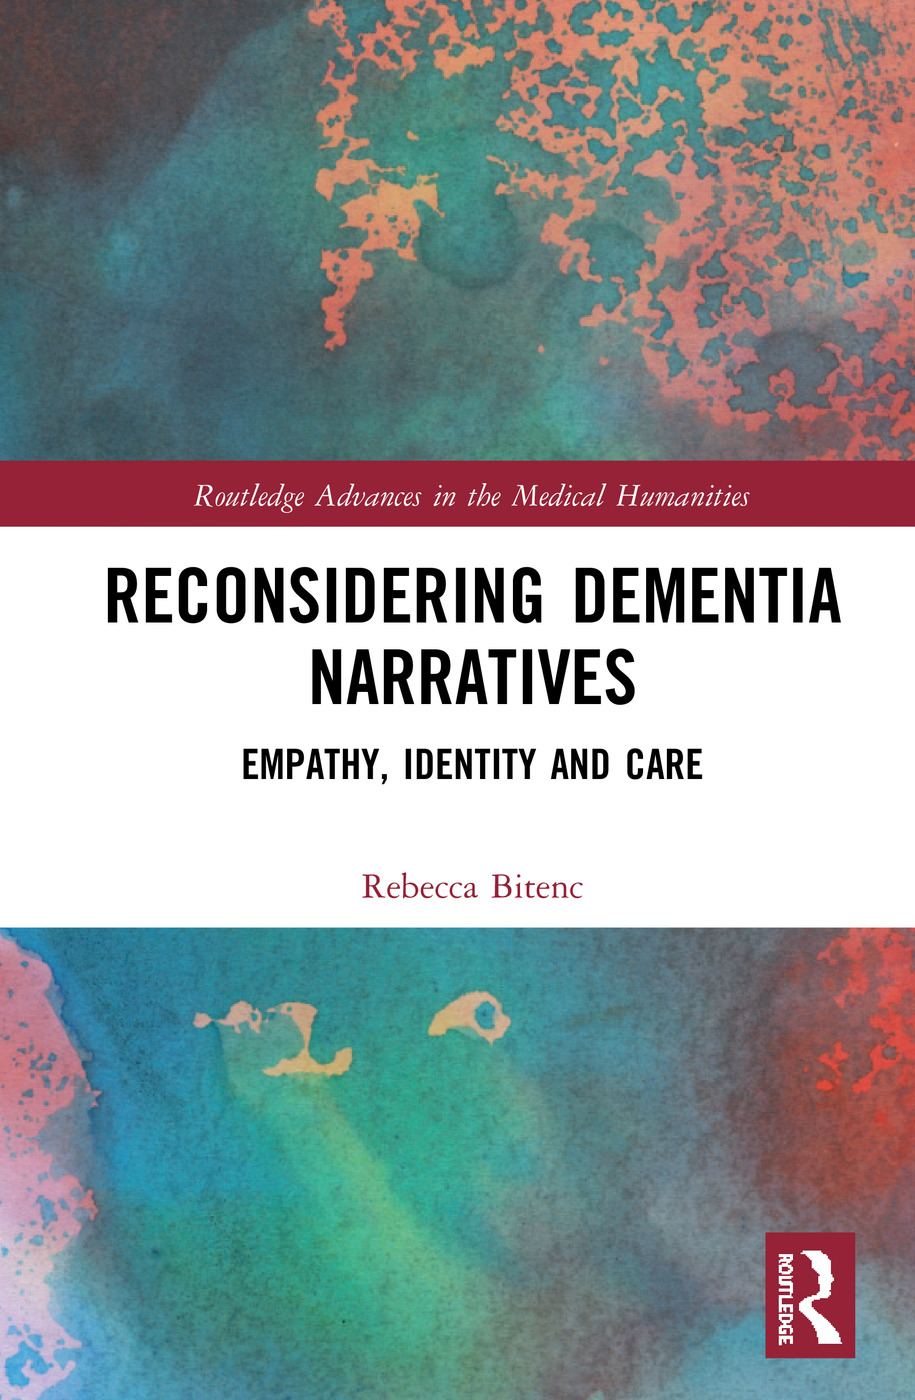 Reconsidering Dementia Narratives: Empathy, Identity and Care book cover